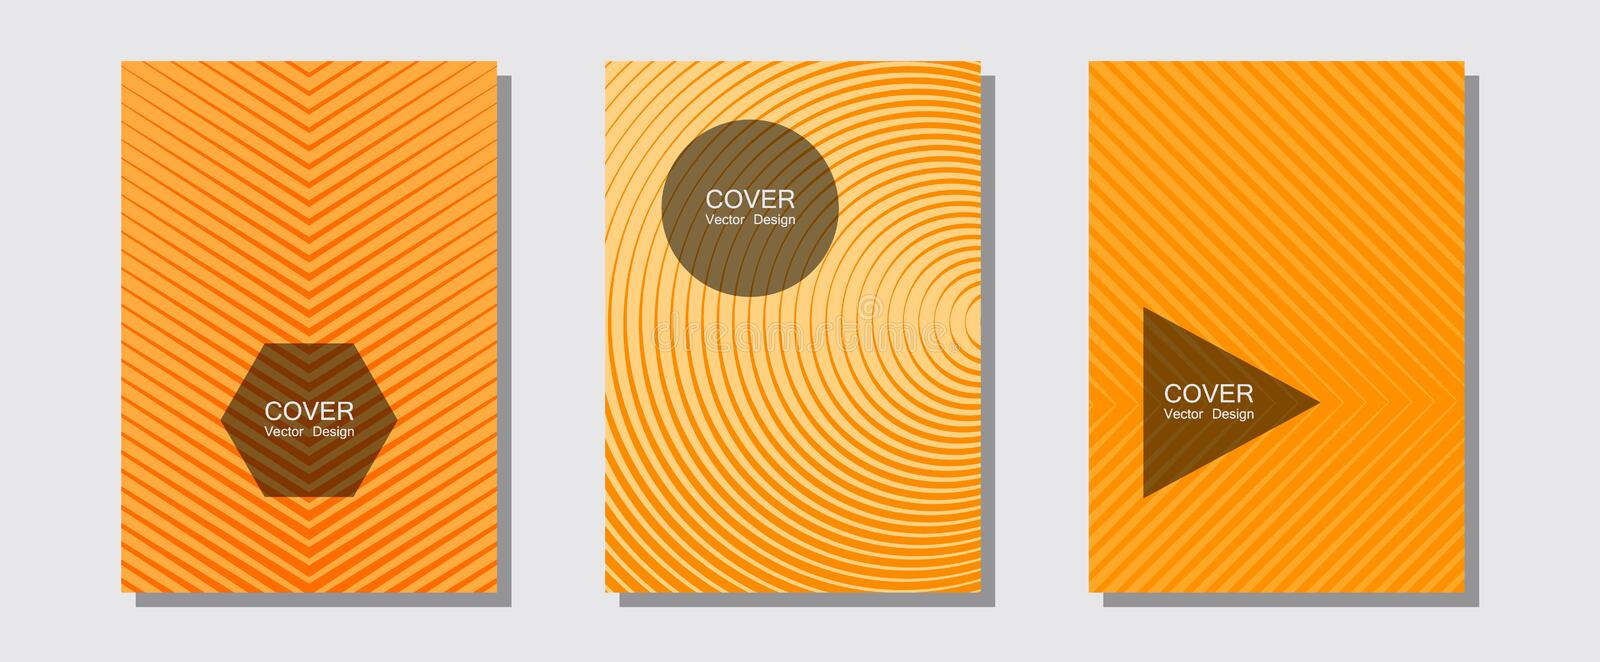 Geometric design templates for banners, covers. Trendy magazines. Halftone lines music poster background. Balanced posh mockups. Halftone brochure lines vector illustration